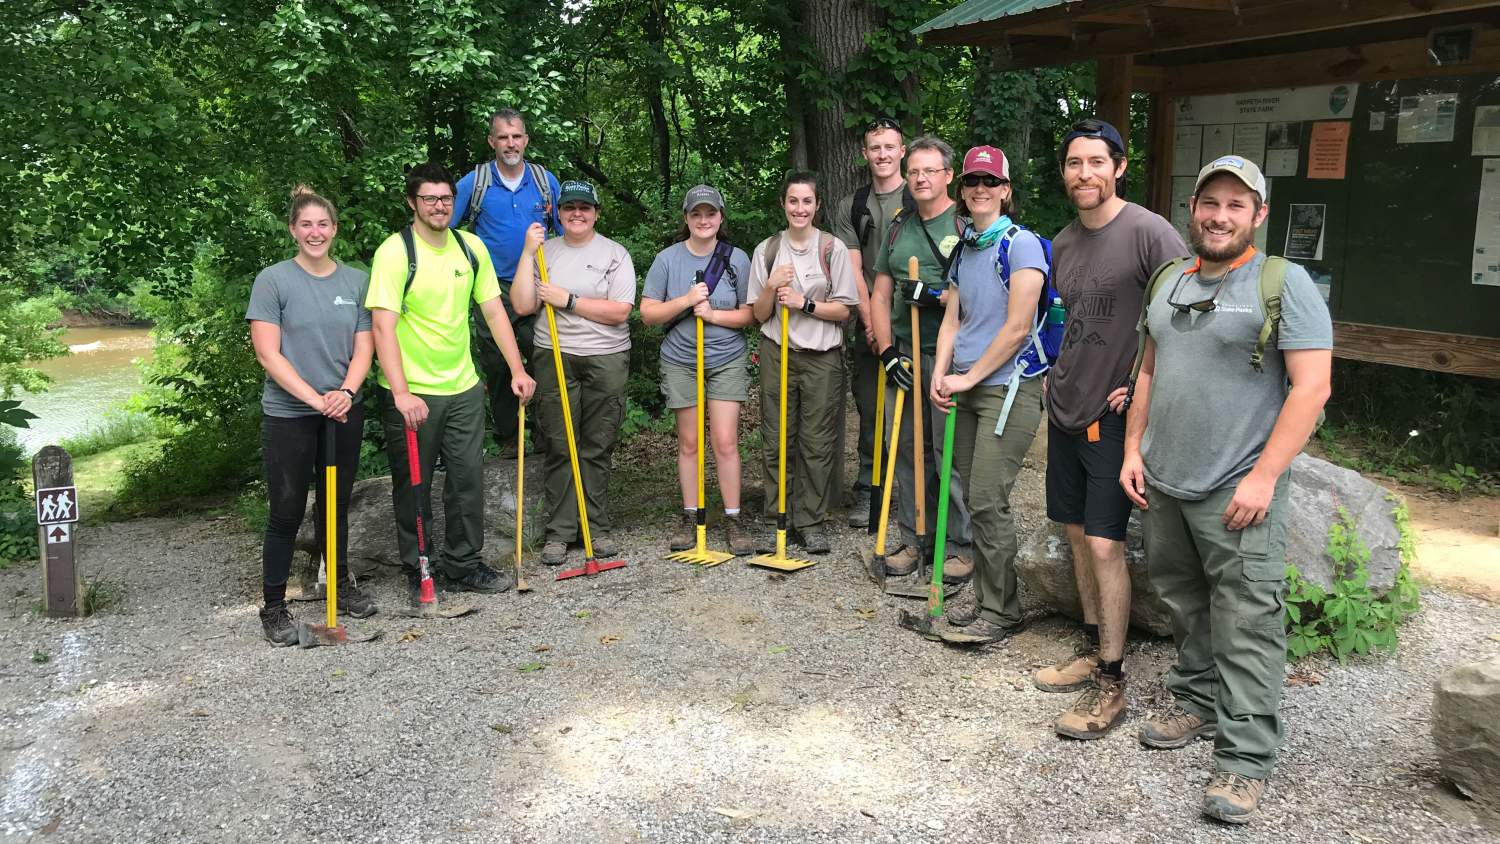 Harpeth Volunteers: Trail Building at Harpeth River State Park